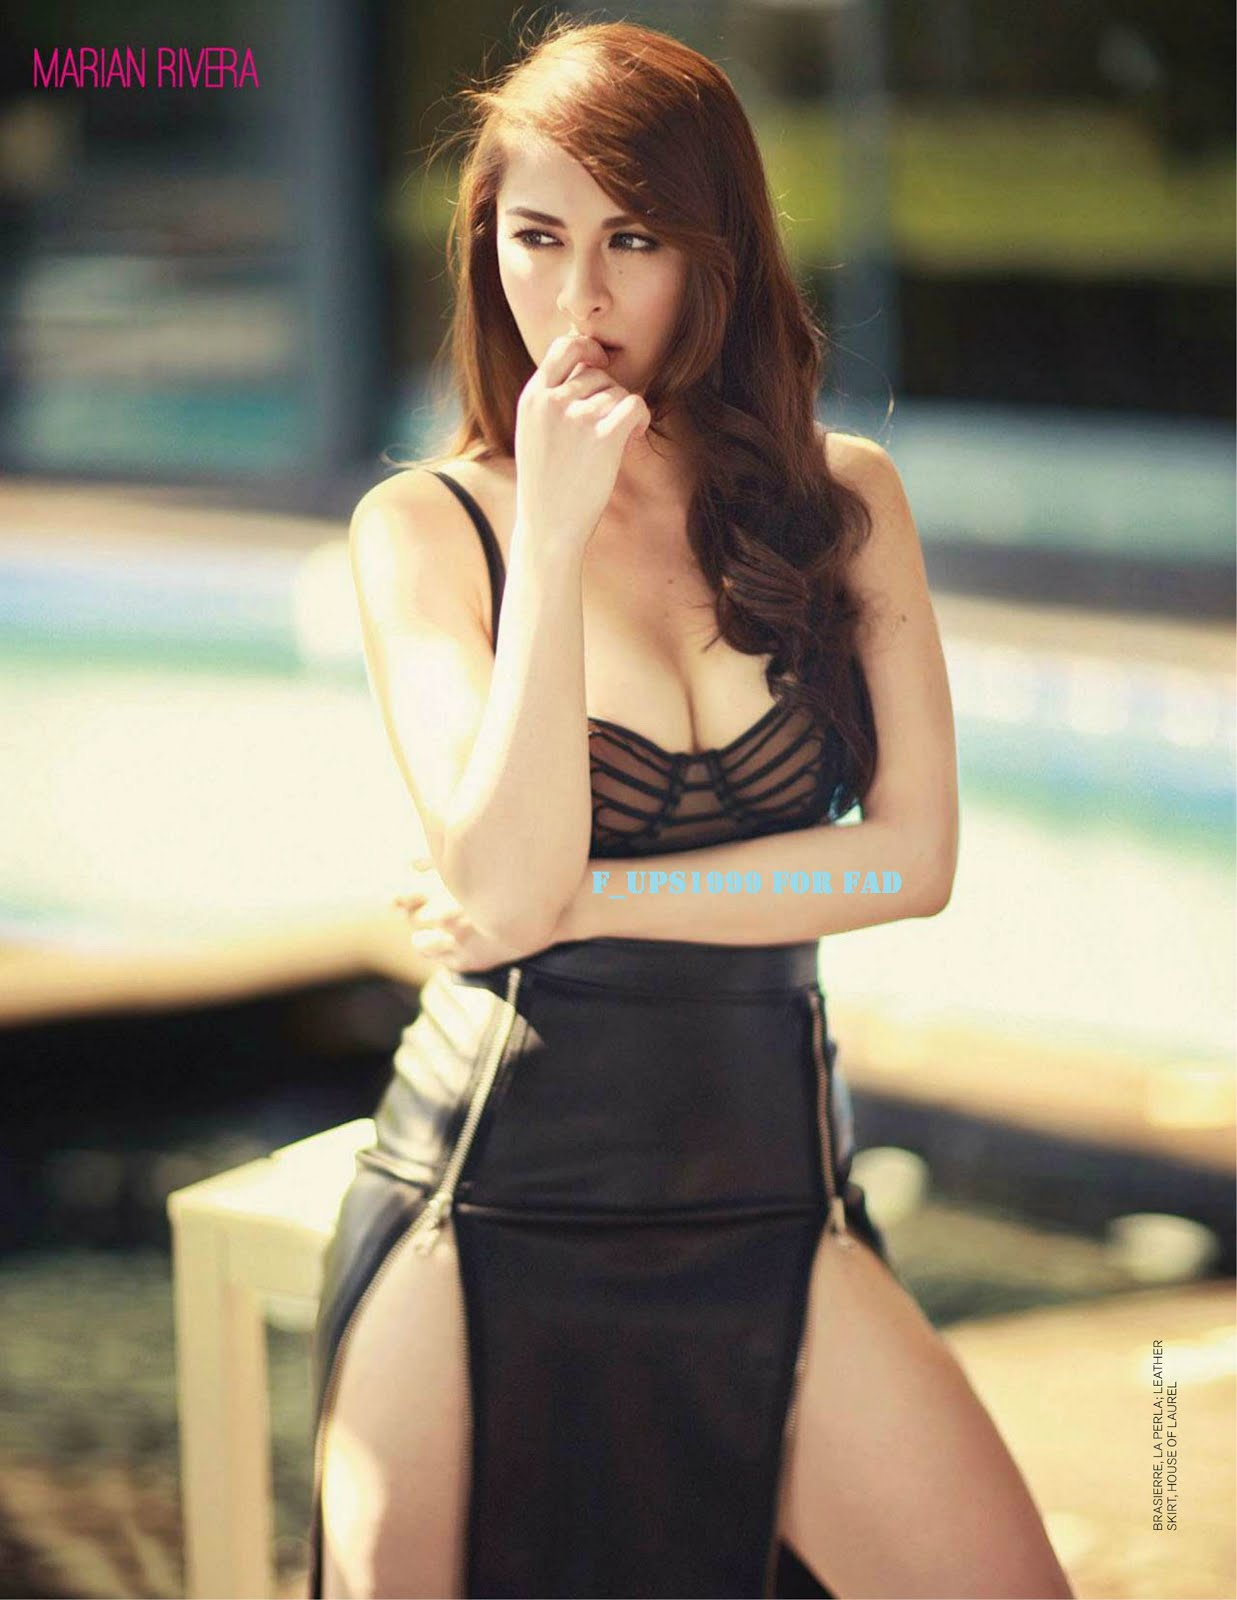 Well Remember My Early Post About The Marian Rivera Fhm Cover Here Well Here Are More Pictures Of Her I Was Able To Find On The Web